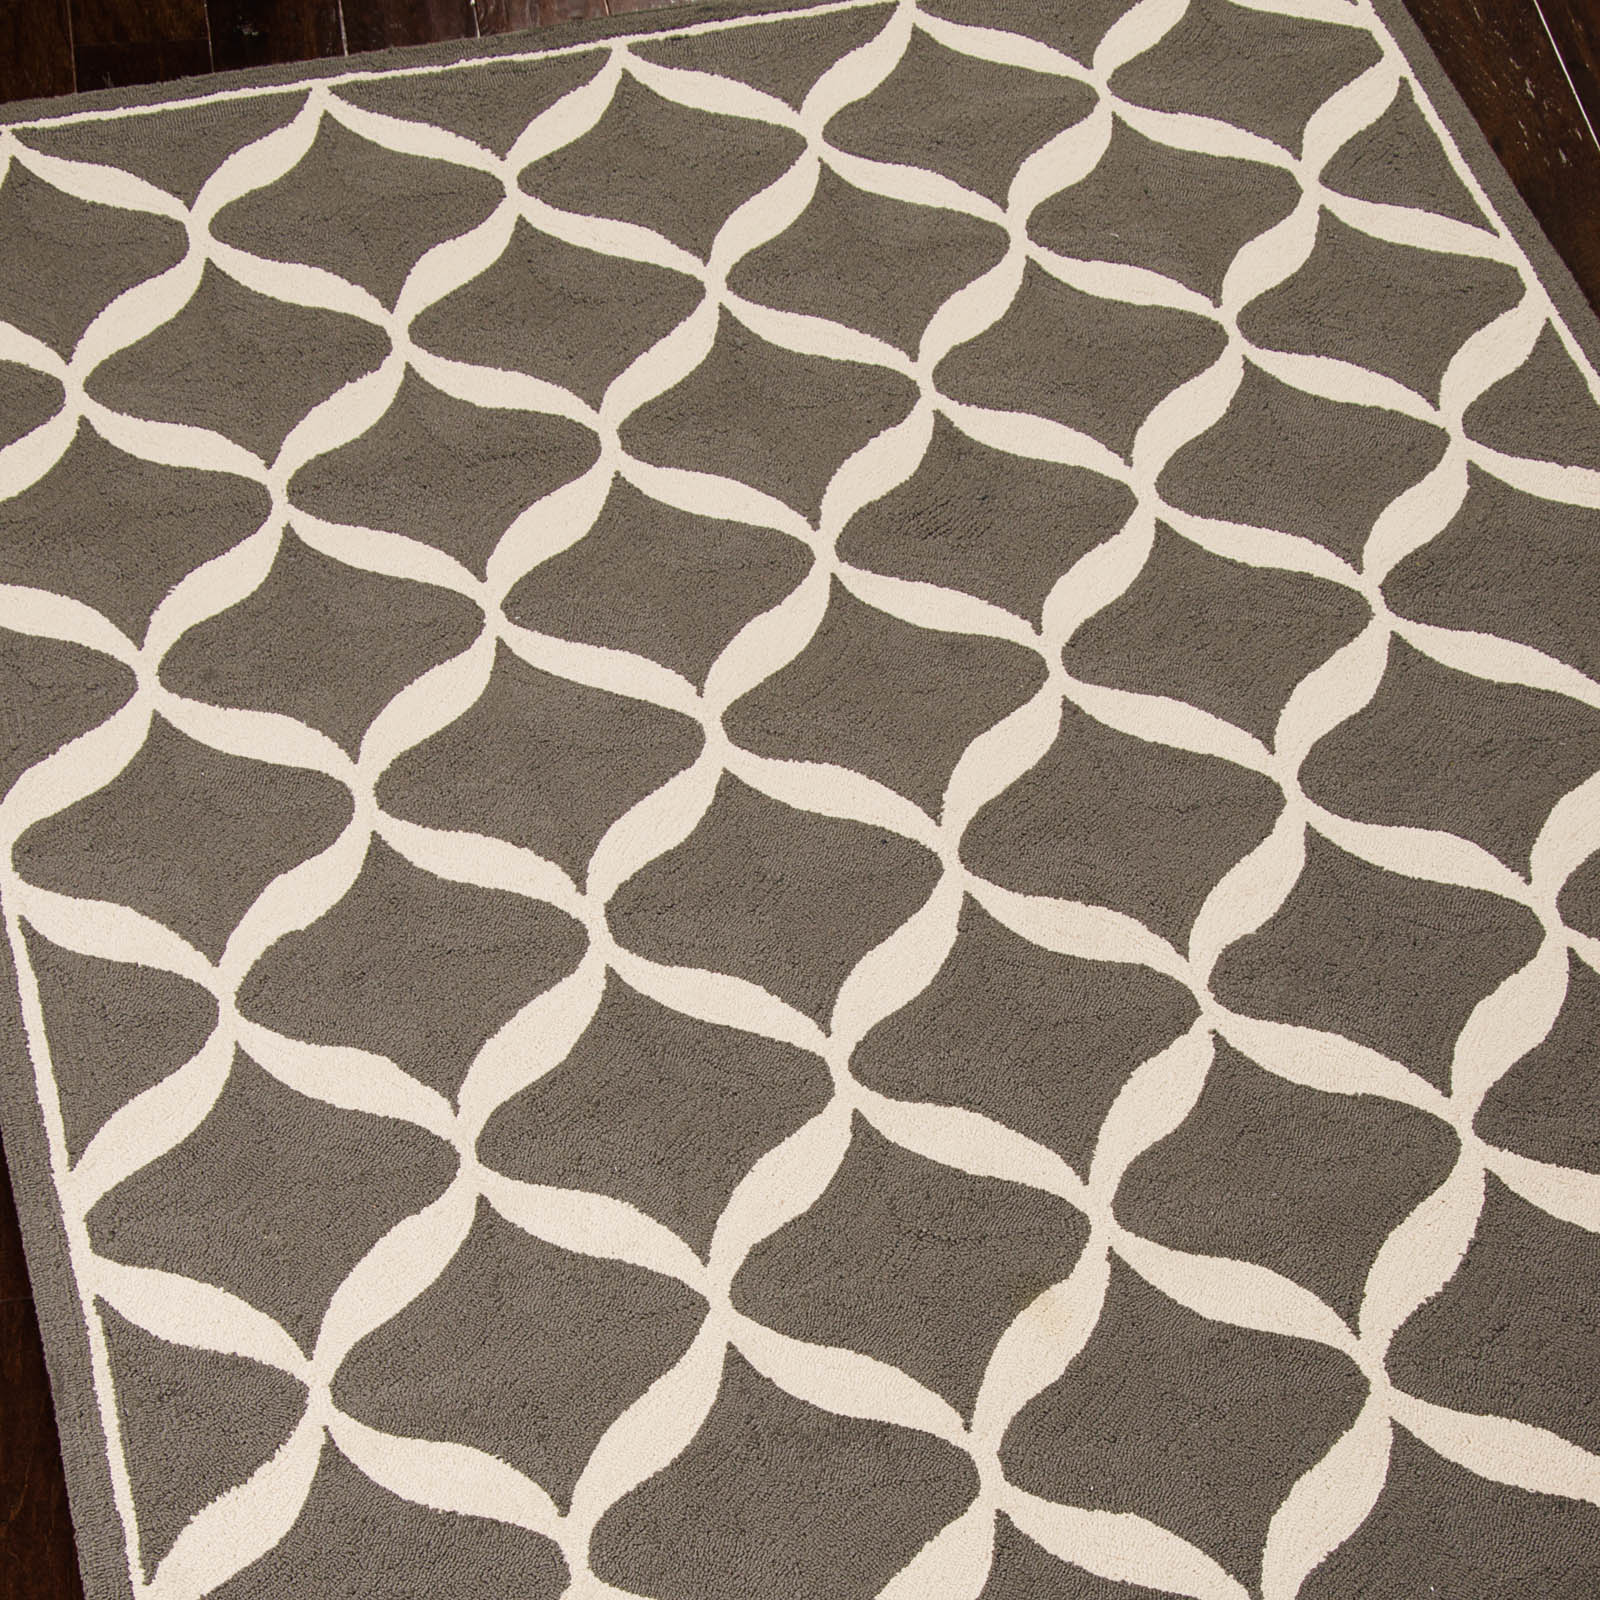 Decor Rugs DER06 by Nourison in Grey and White